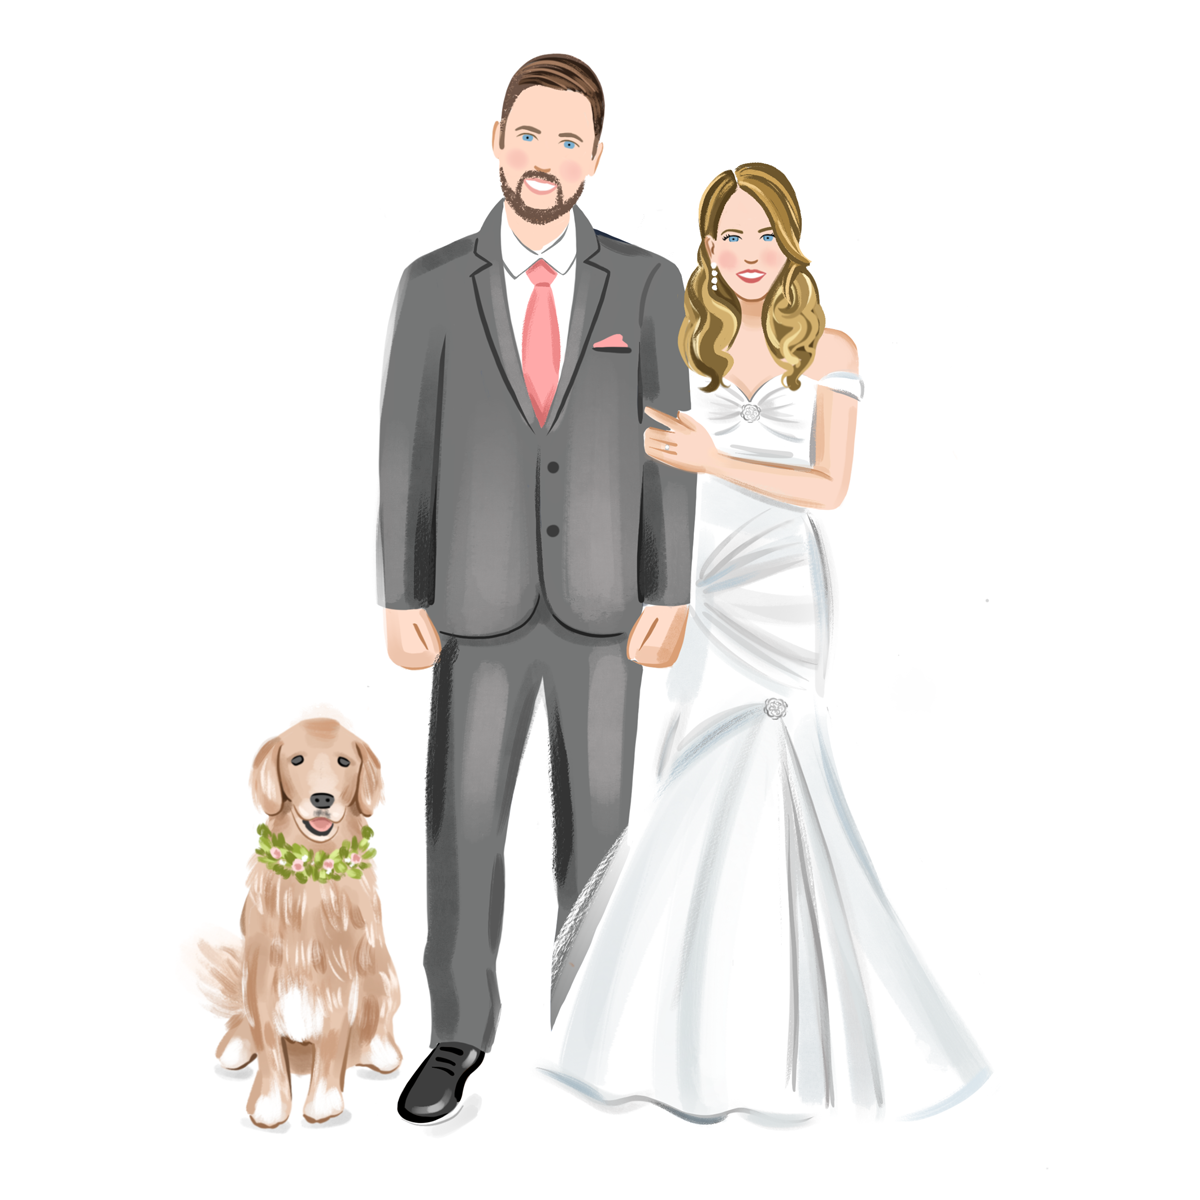 Bride and Groom Illustration